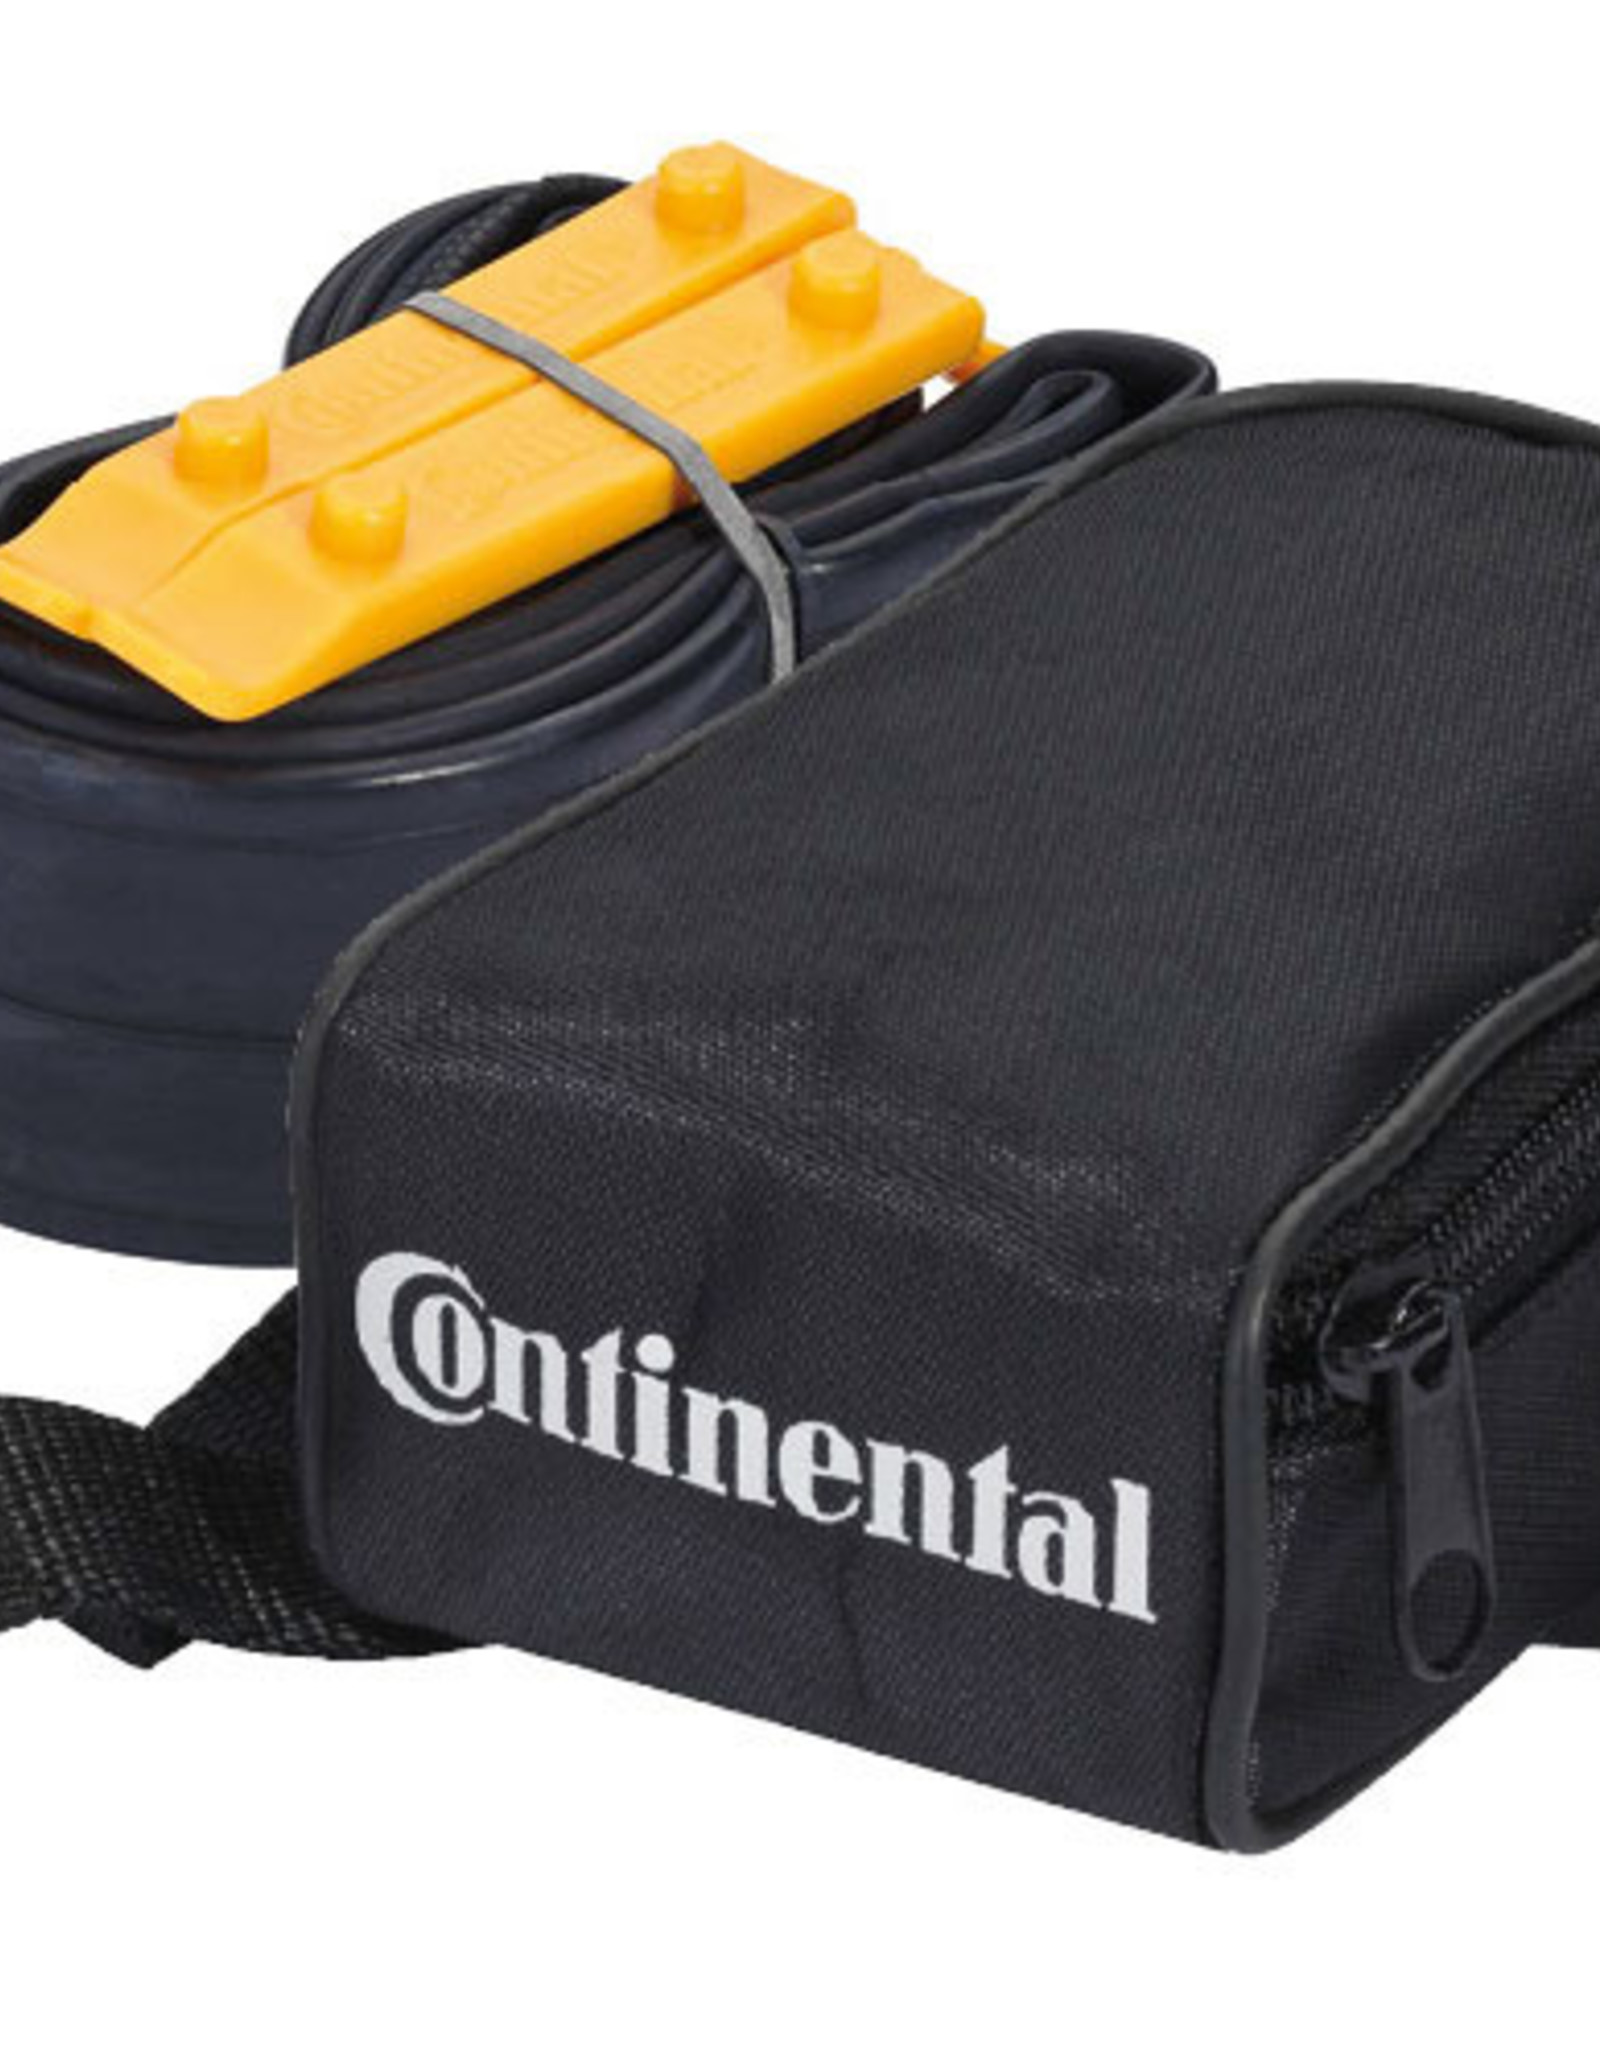 Continental Saddle Bag With Tube - Road or MTB